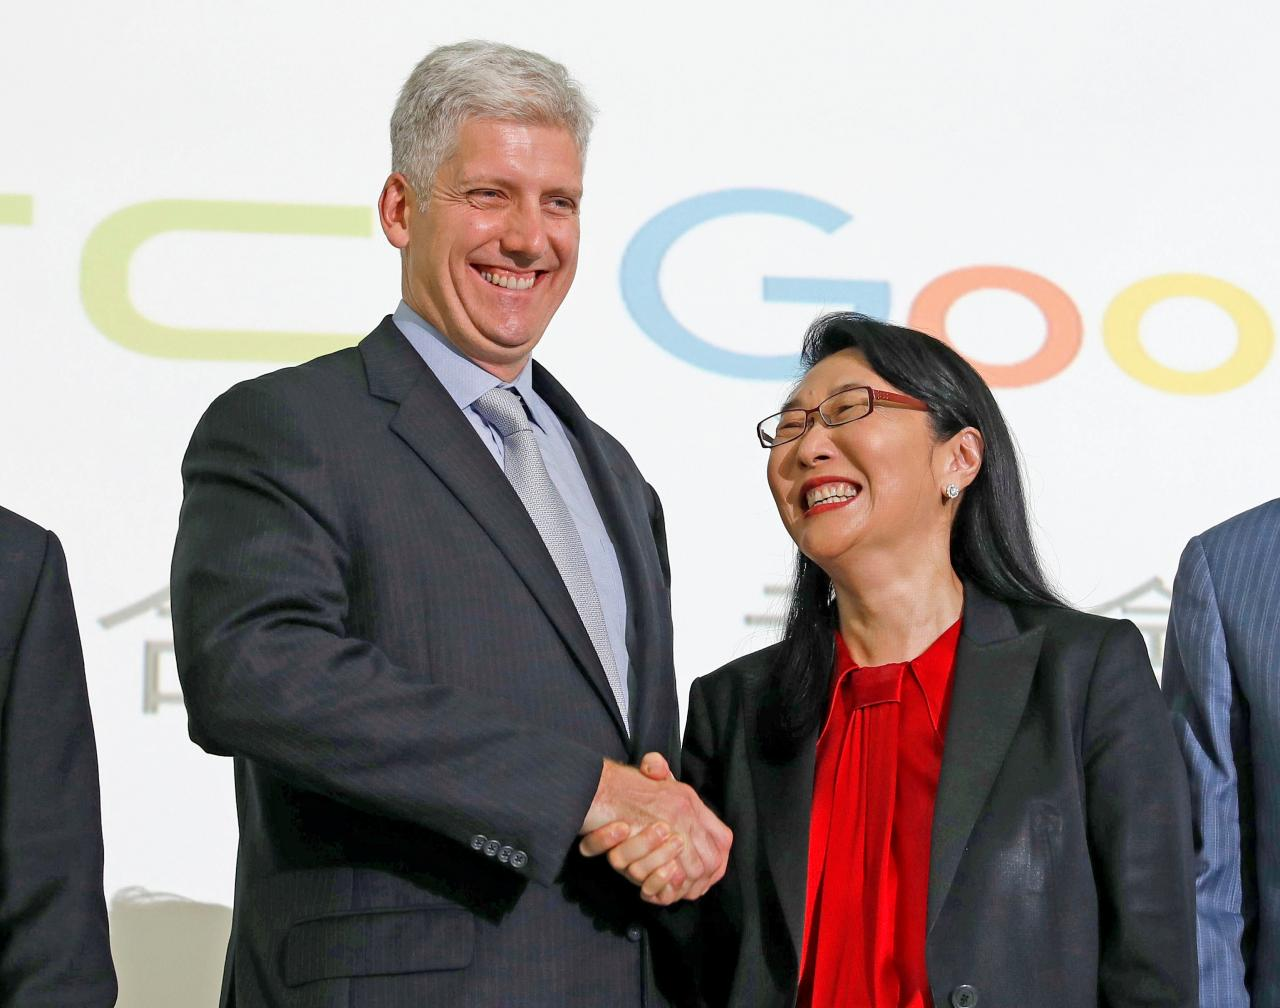 Google hardware executive Rick Osterloh (L) shakes hand with HTC CEO Cher Wang during a news conference to announce Google to acquire HTC's Pixel smartphone division, in Taipei, Taiwan 21 September 2017.